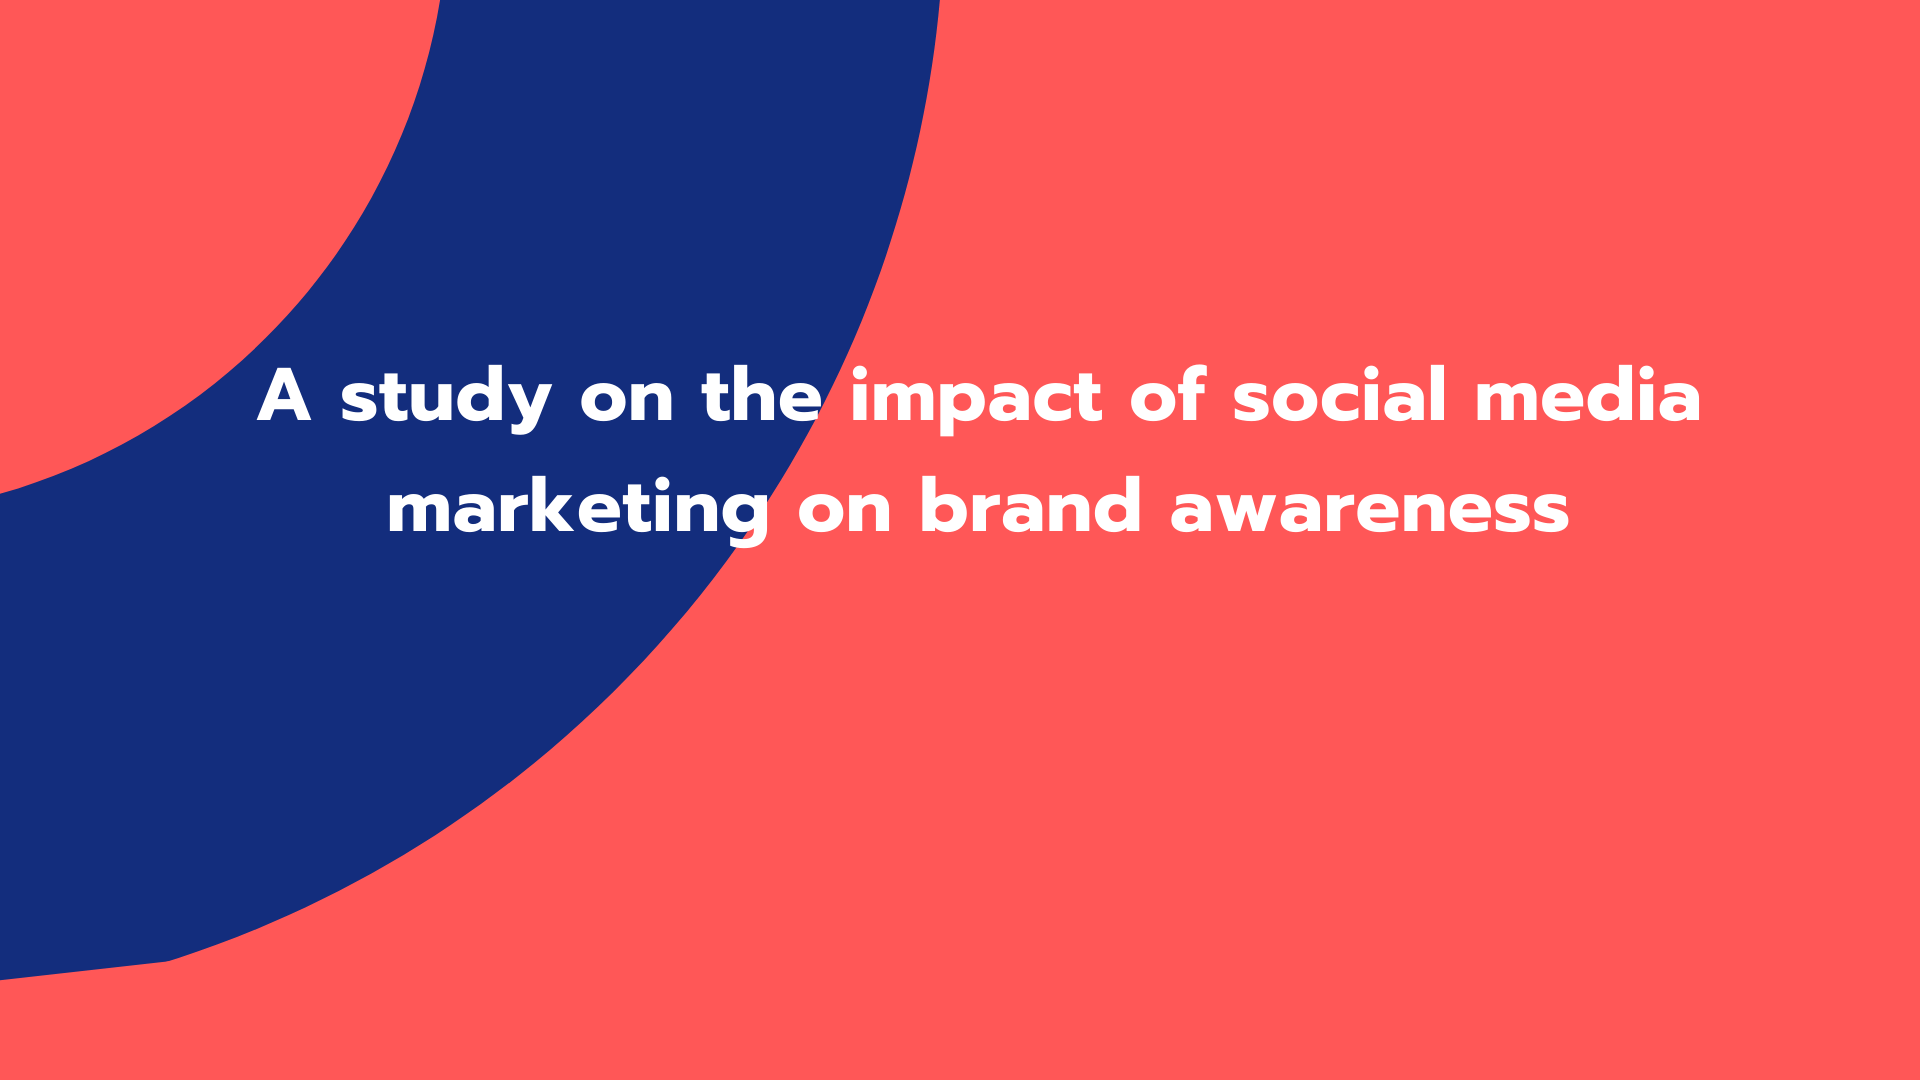 A study on the impact of social media marketing on brand awareness